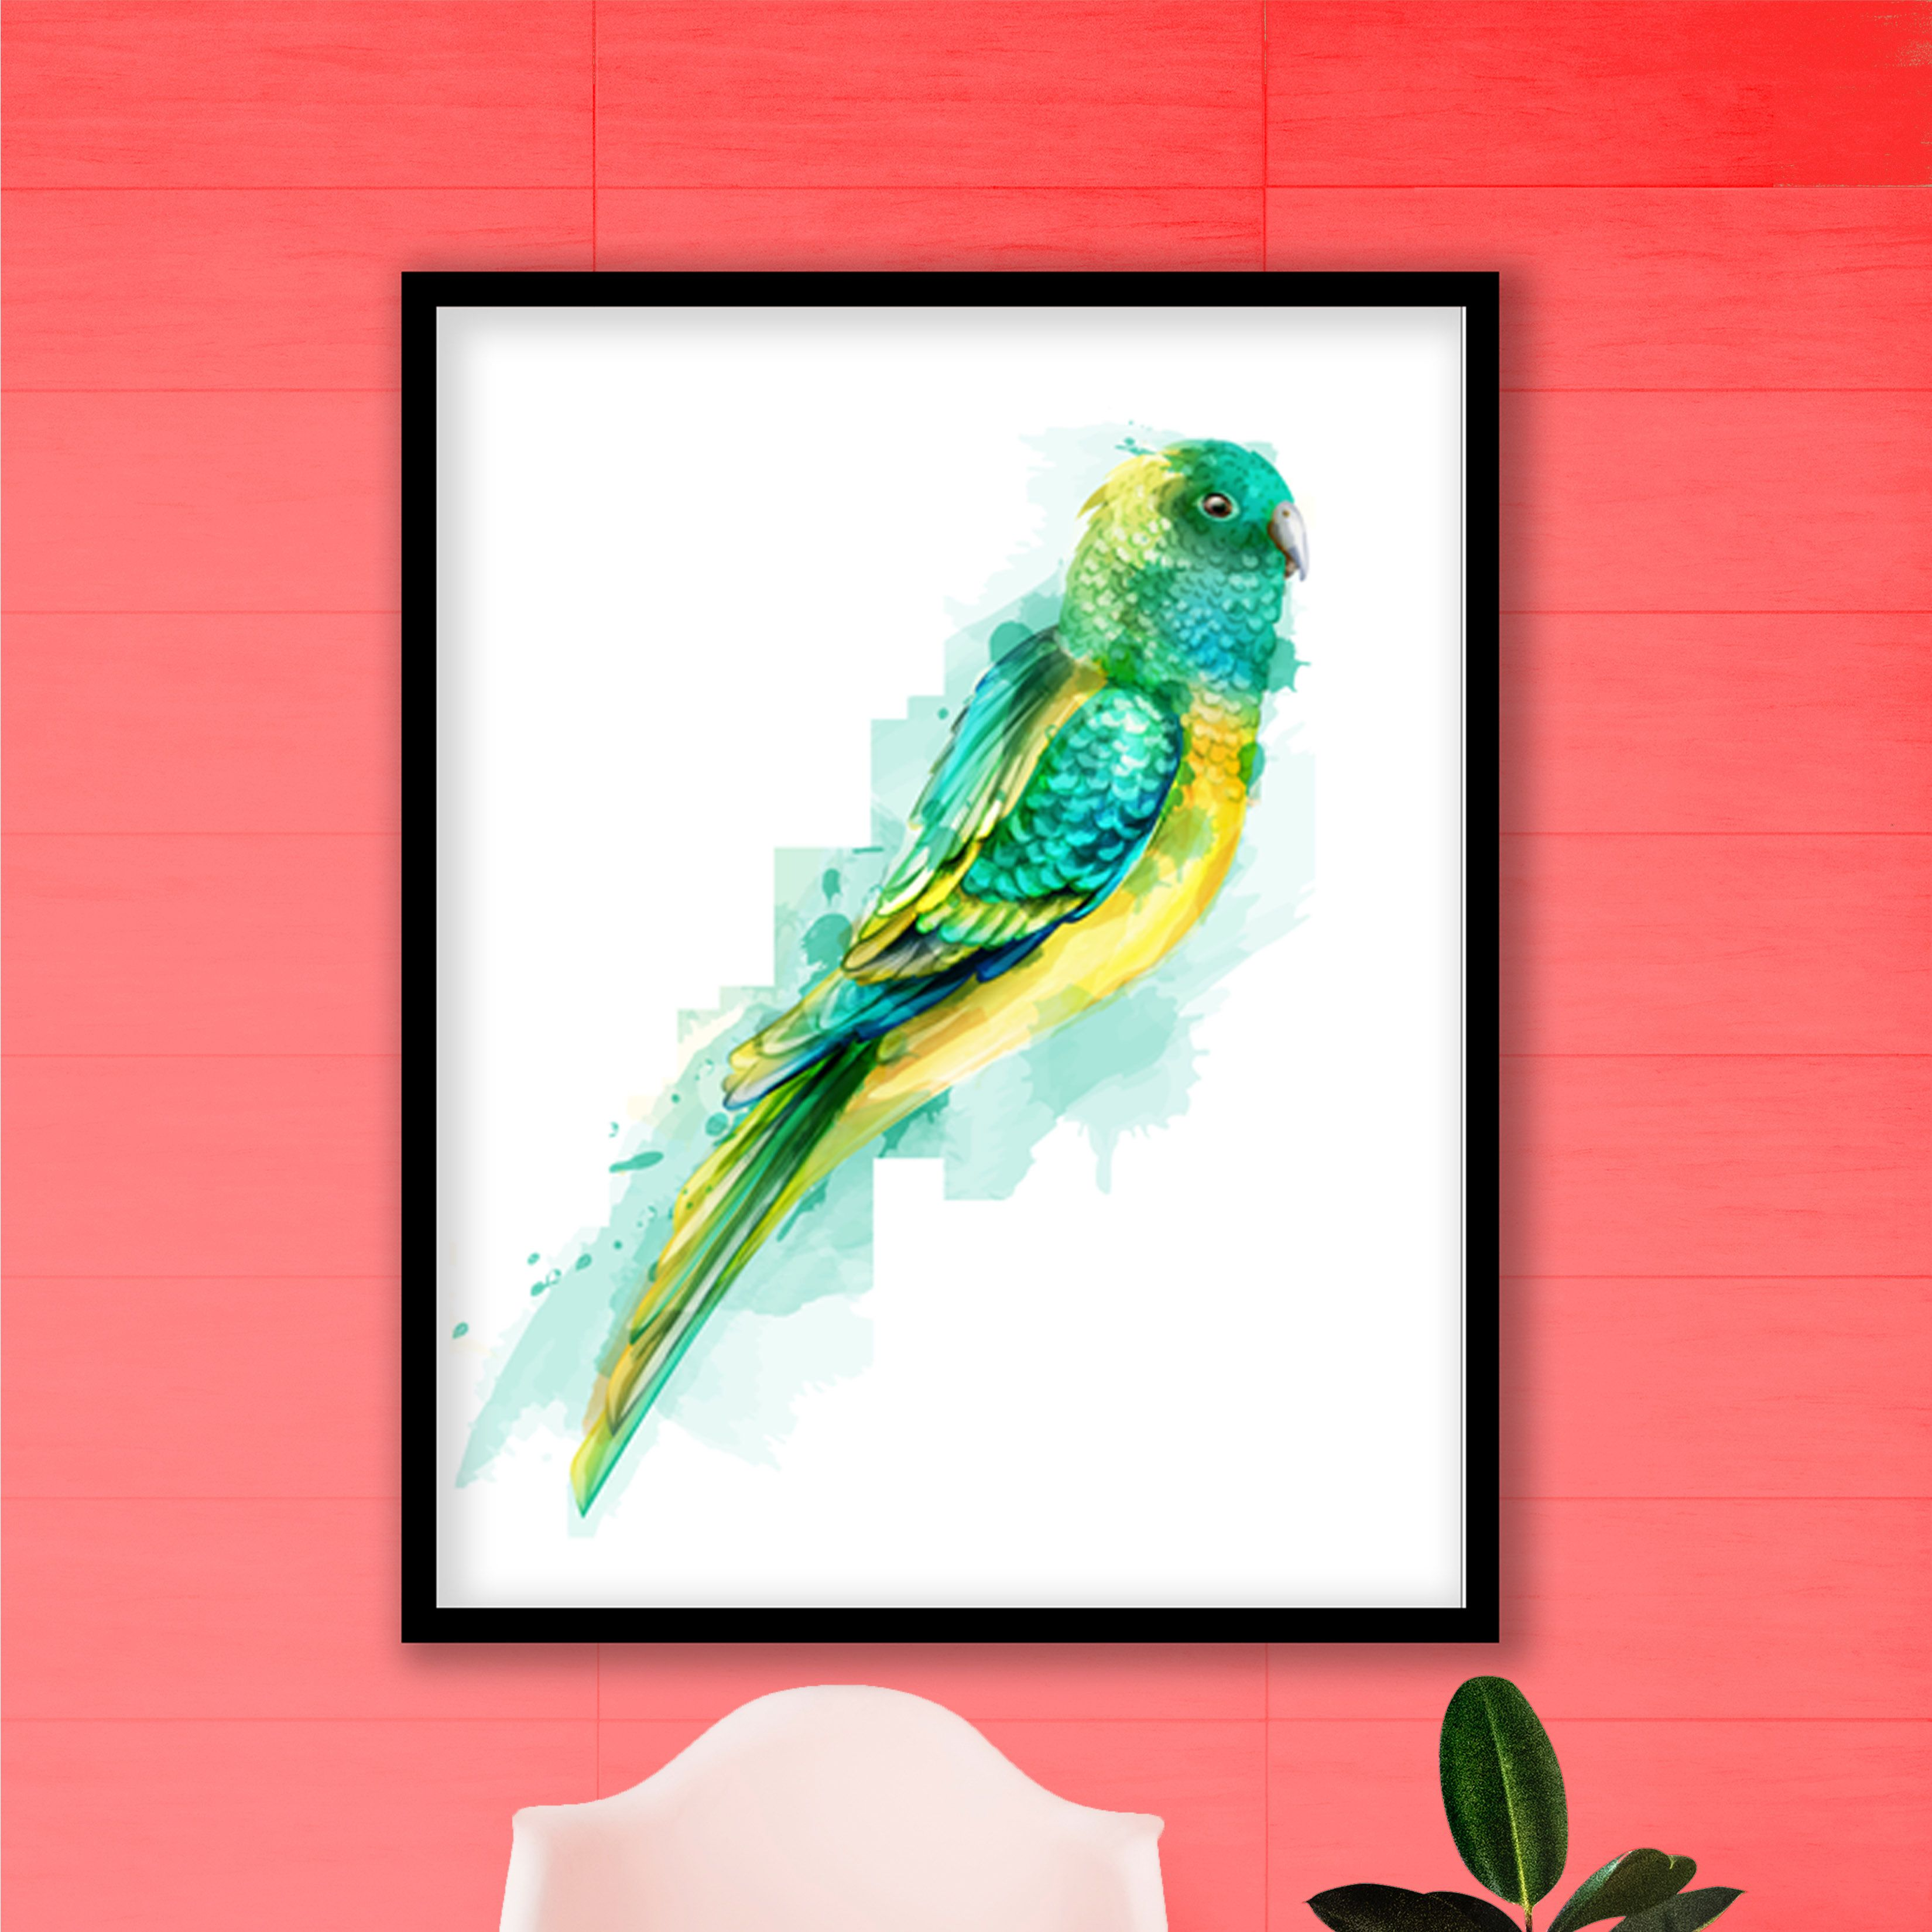 Botanical 50 watercolor painting framed wall art ready